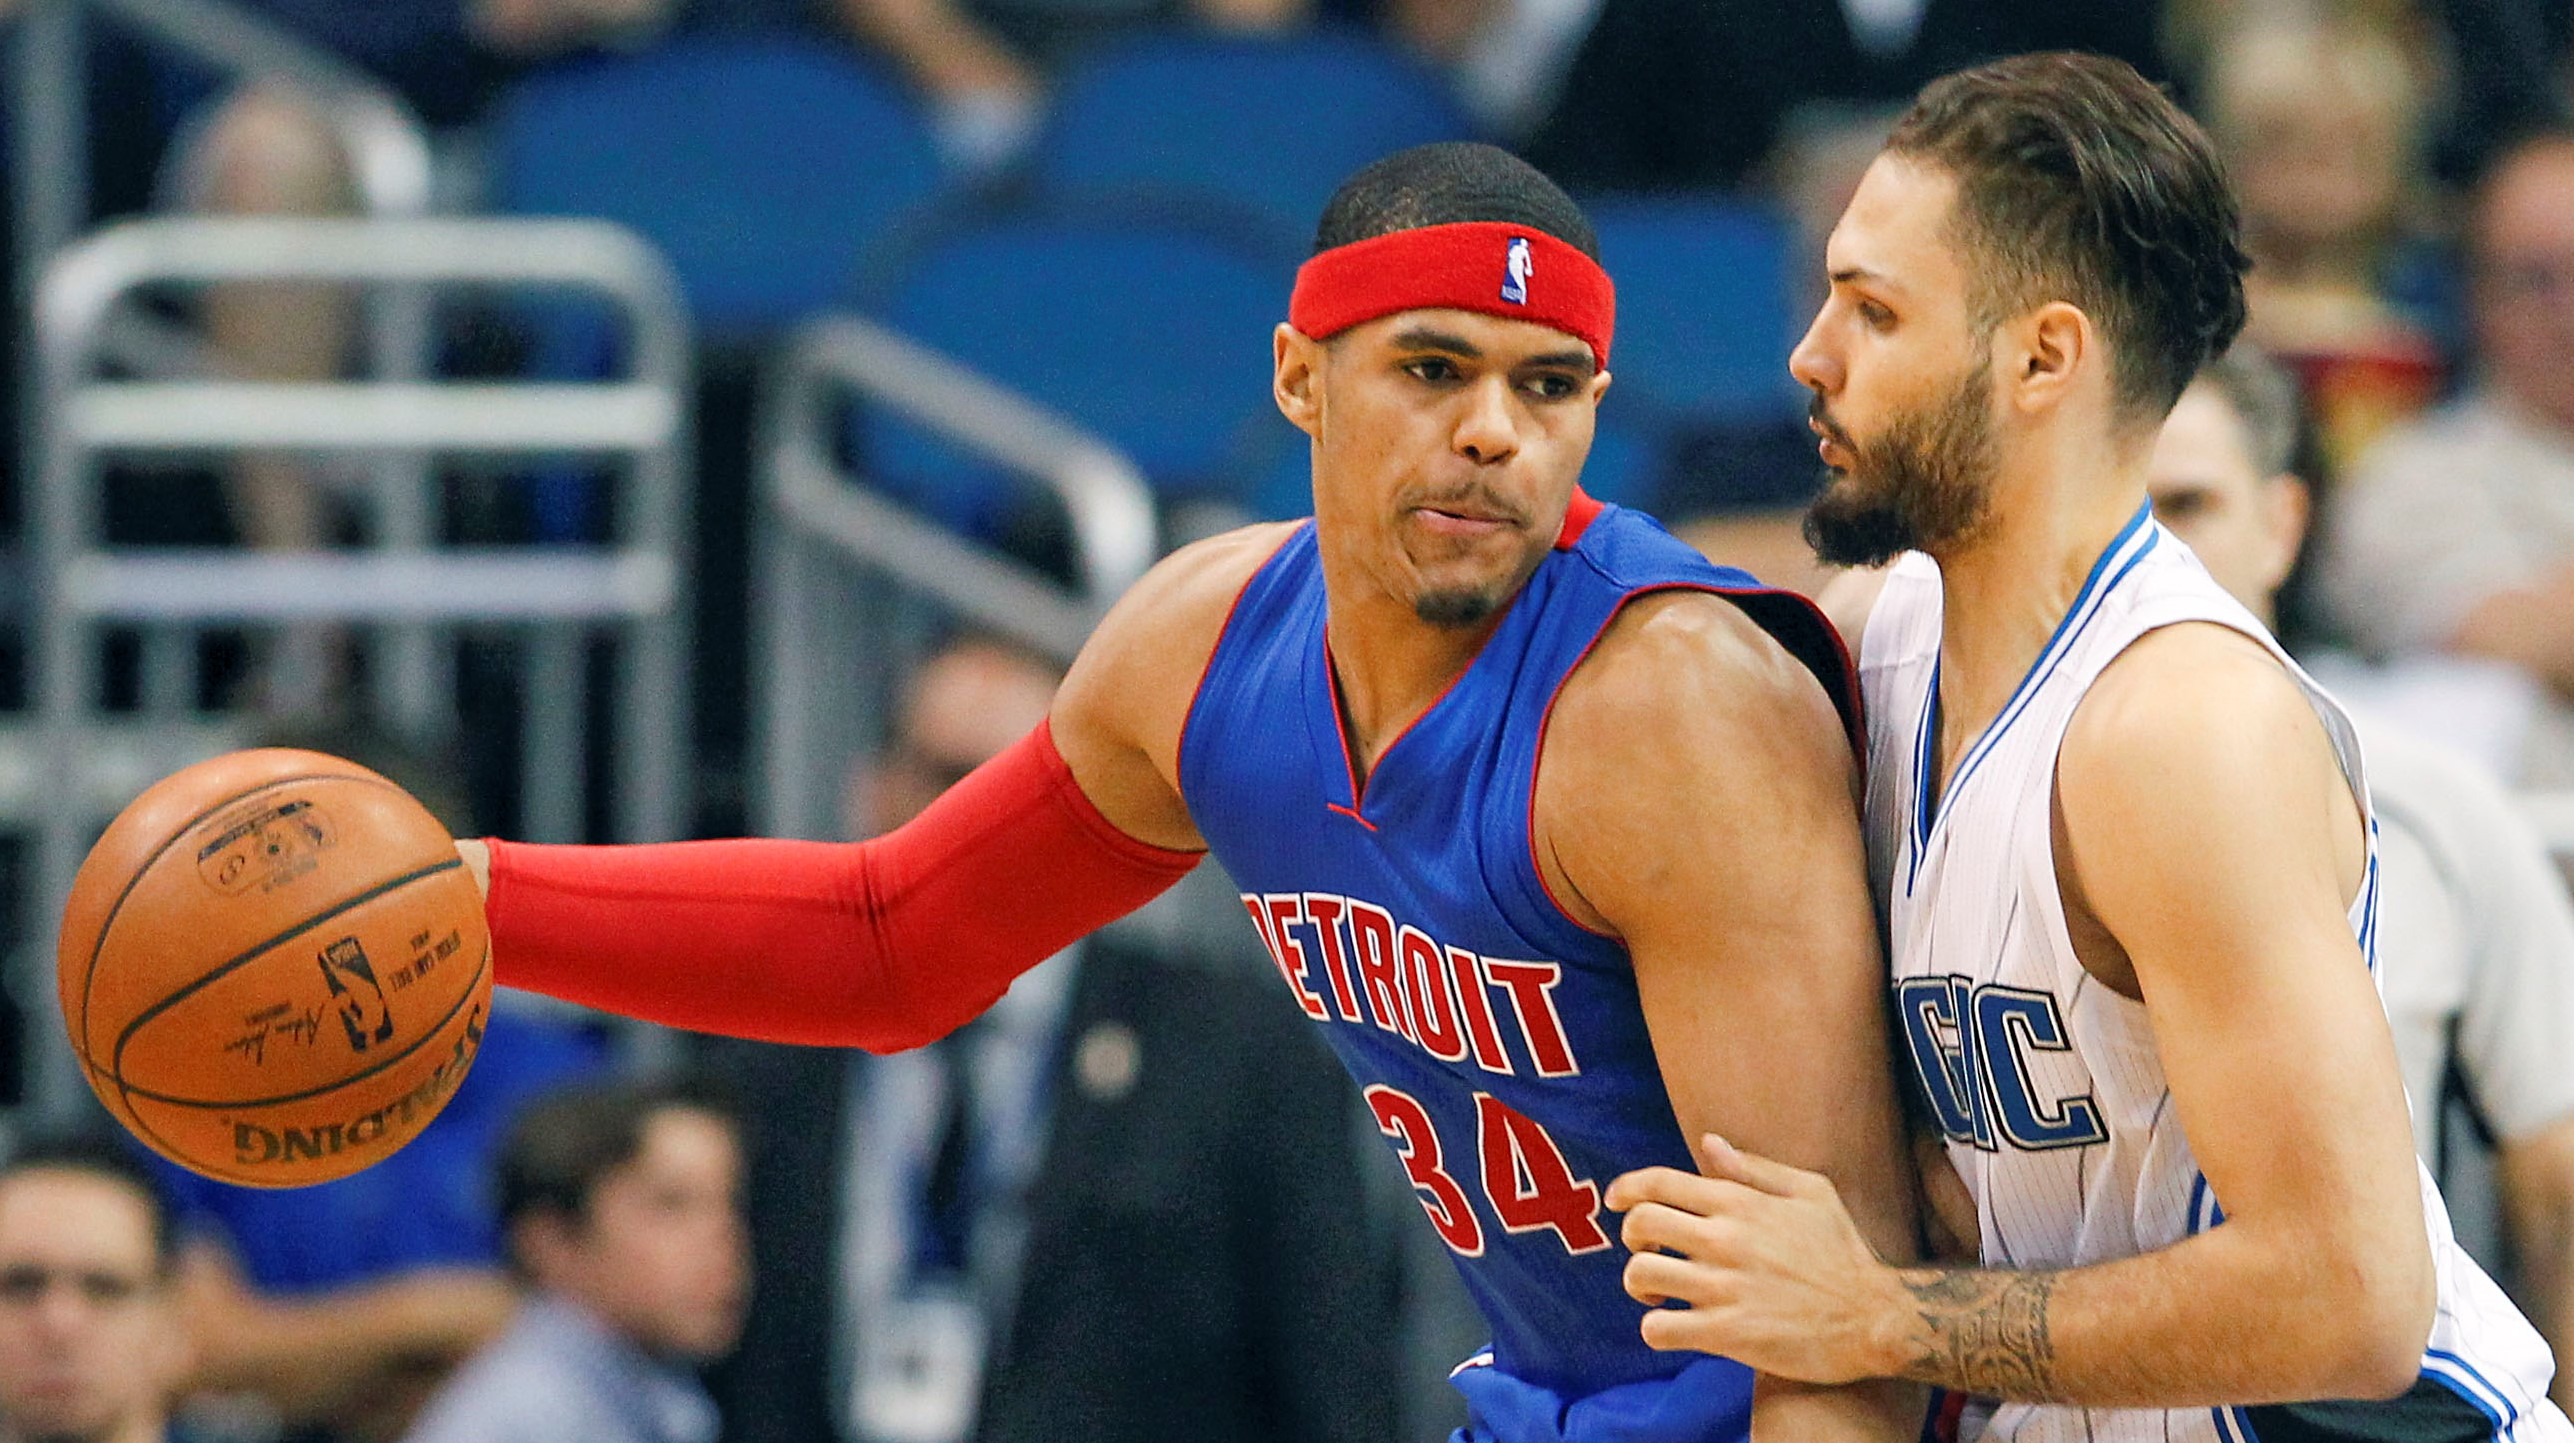 Apr 6, 2016; Orlando, FL, USA; Orlando Magic guard Evan Fournier (10) guards against Detroit Pistons forward Tobias Harris (34) during the second half of a basketball game at Amway Center. The Pistons won 108-104. Mandatory Credit: Reinhold Matay-USA TODAY Sports